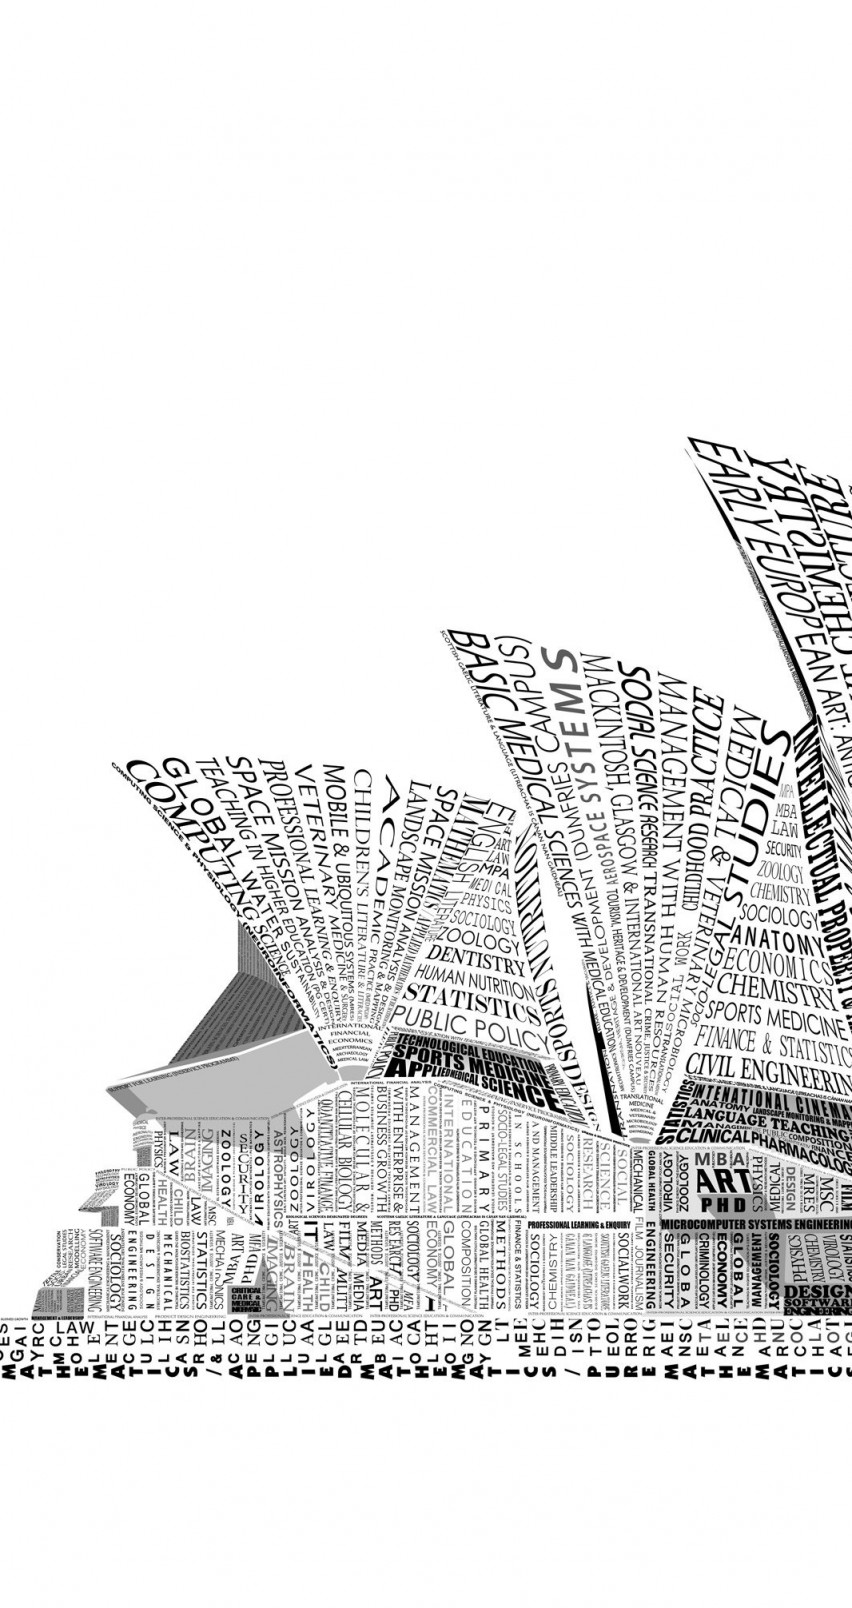 Opera House Sydney Typography Wallpaper for Apple iPhone 6 / 6s